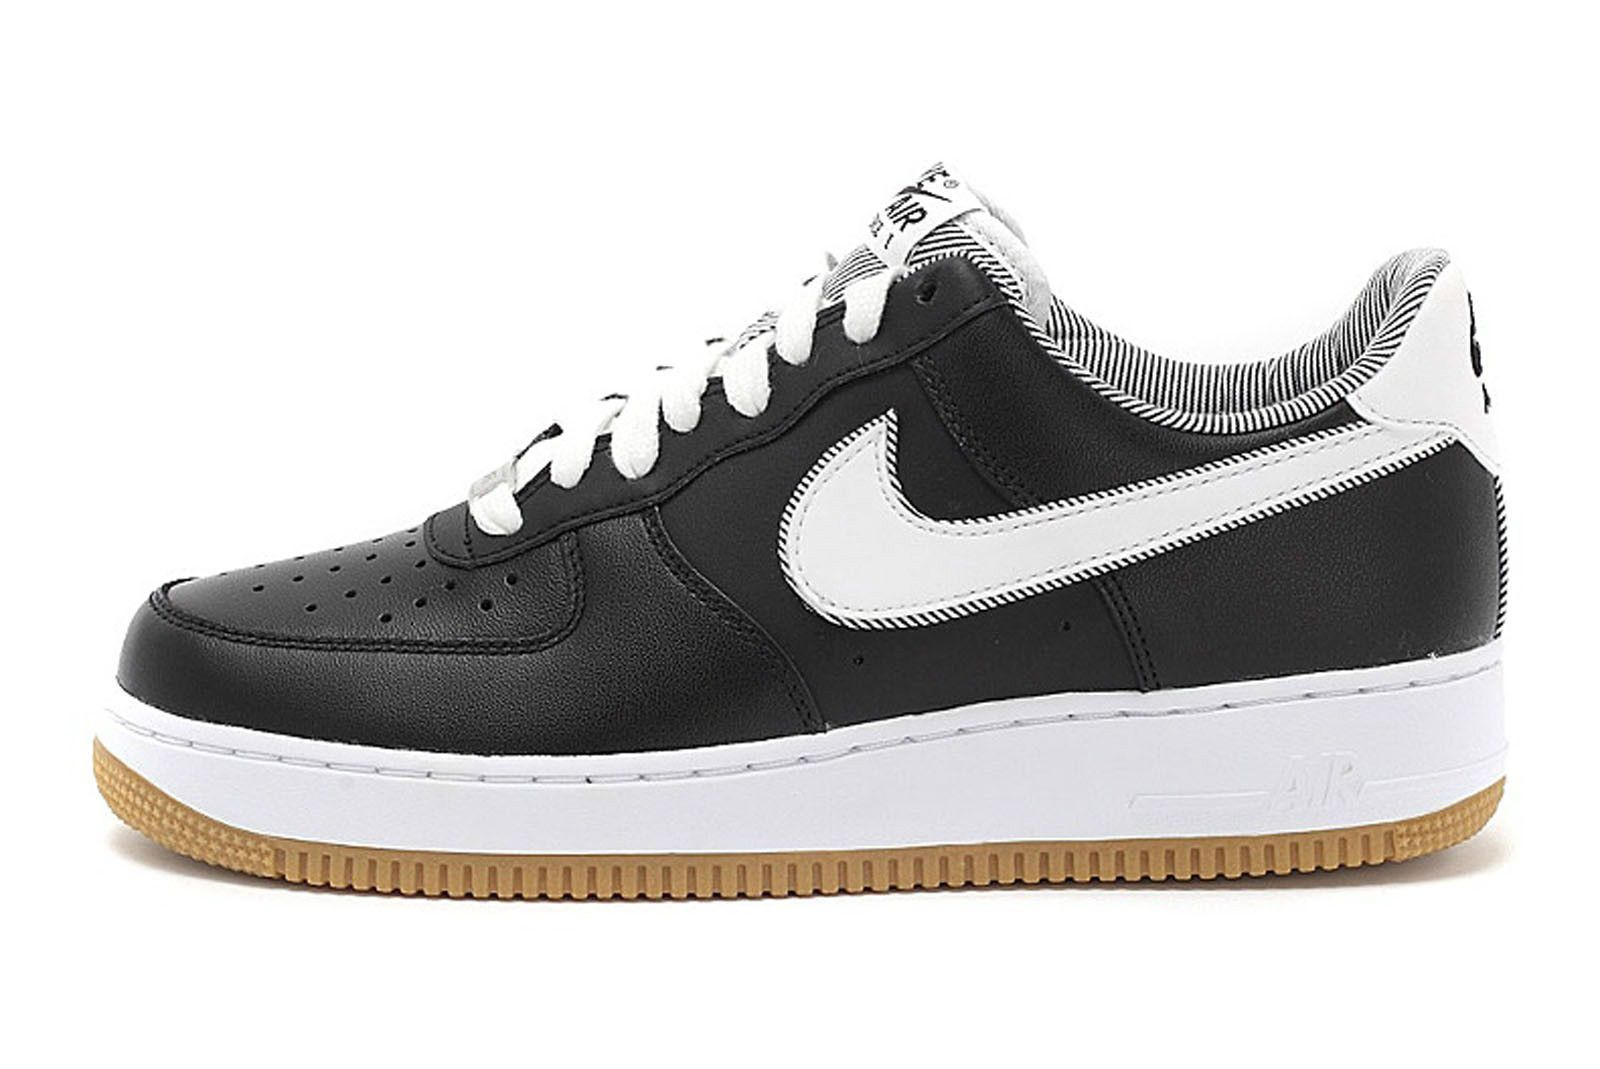 low priced 73b67 e54f7 Nike-Air-Force-1-Low-Black-White-Gum